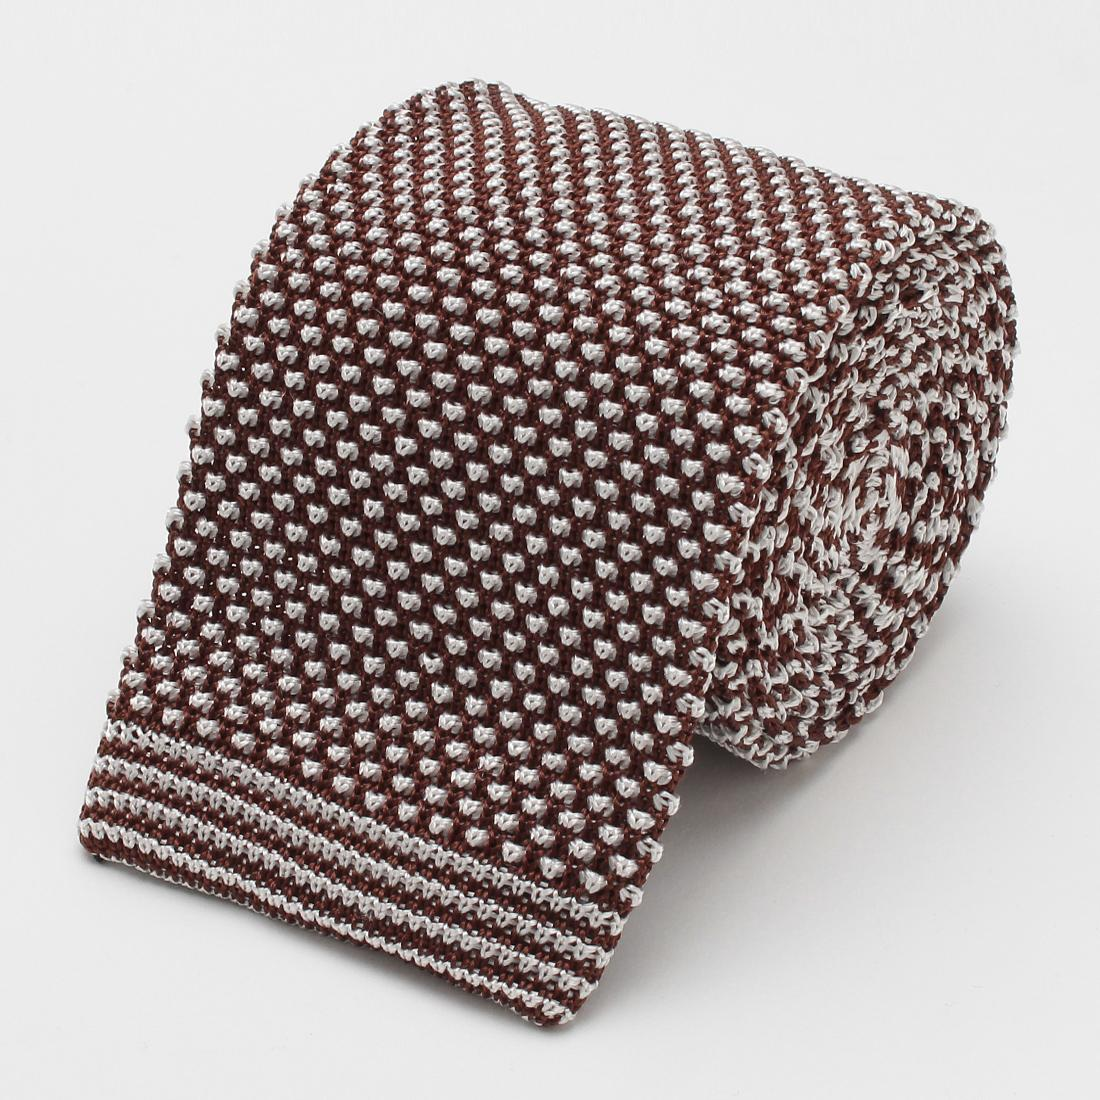 Barneys New York Silk Pattern Knit Tie 2004632: Brown